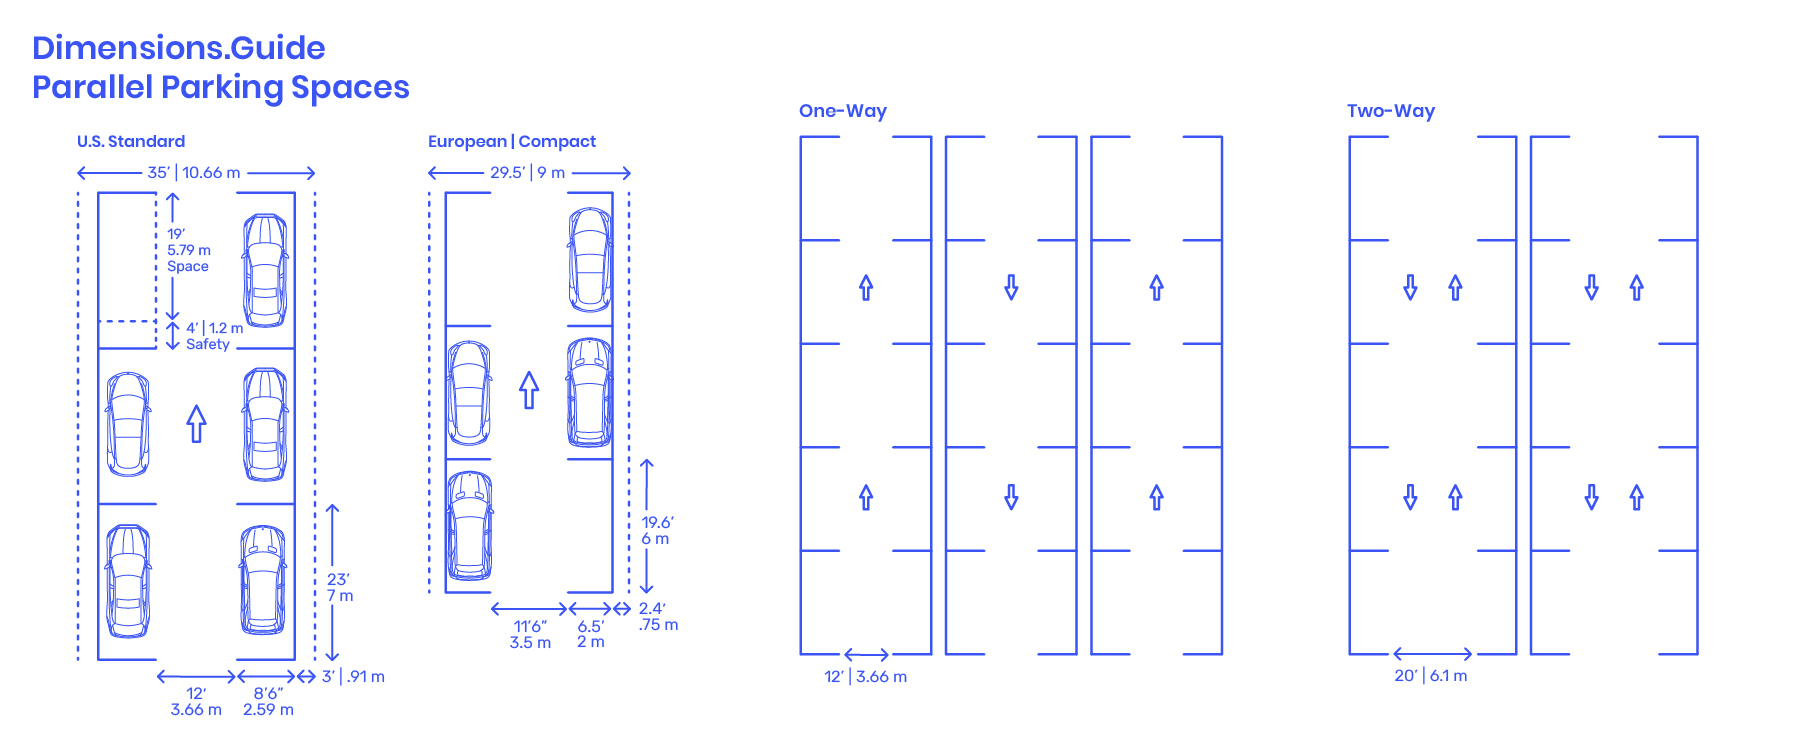 Astonishing Parallel Parking Spaces Dimensions Drawings Dimensions Guide Wiring 101 Mecadwellnesstrialsorg